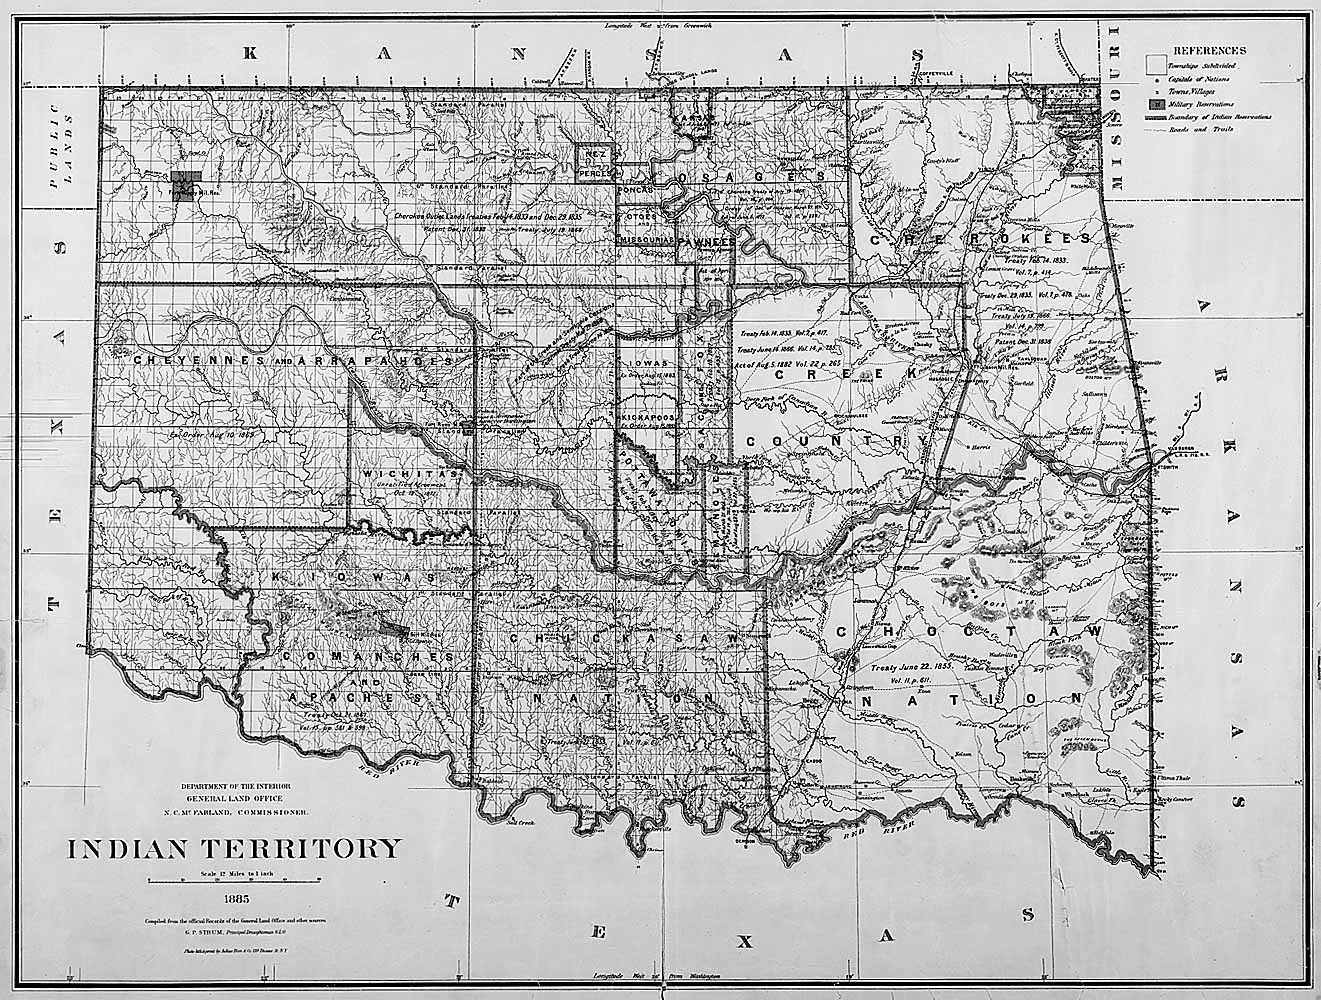 the dawes act The dawes act of 1887 (also known as the general allotment act or the dawes severalty act of 1887), authorized the president of the united states to survey american indian tribal land and divide it into allotments for individual indians those who accepted allotments and lived separately from the tribe would be granted united states citizenship.